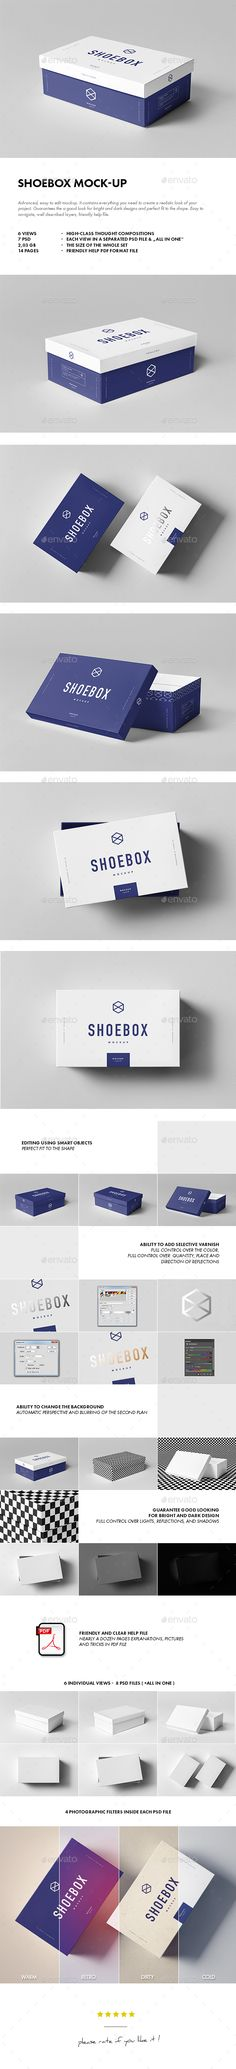 Shoebox Mockup — Photoshop PSD #3000x2008 #square • Download ➝ https://graphicriver.net/item/shoebox-mockup/18958063?ref=pxcr